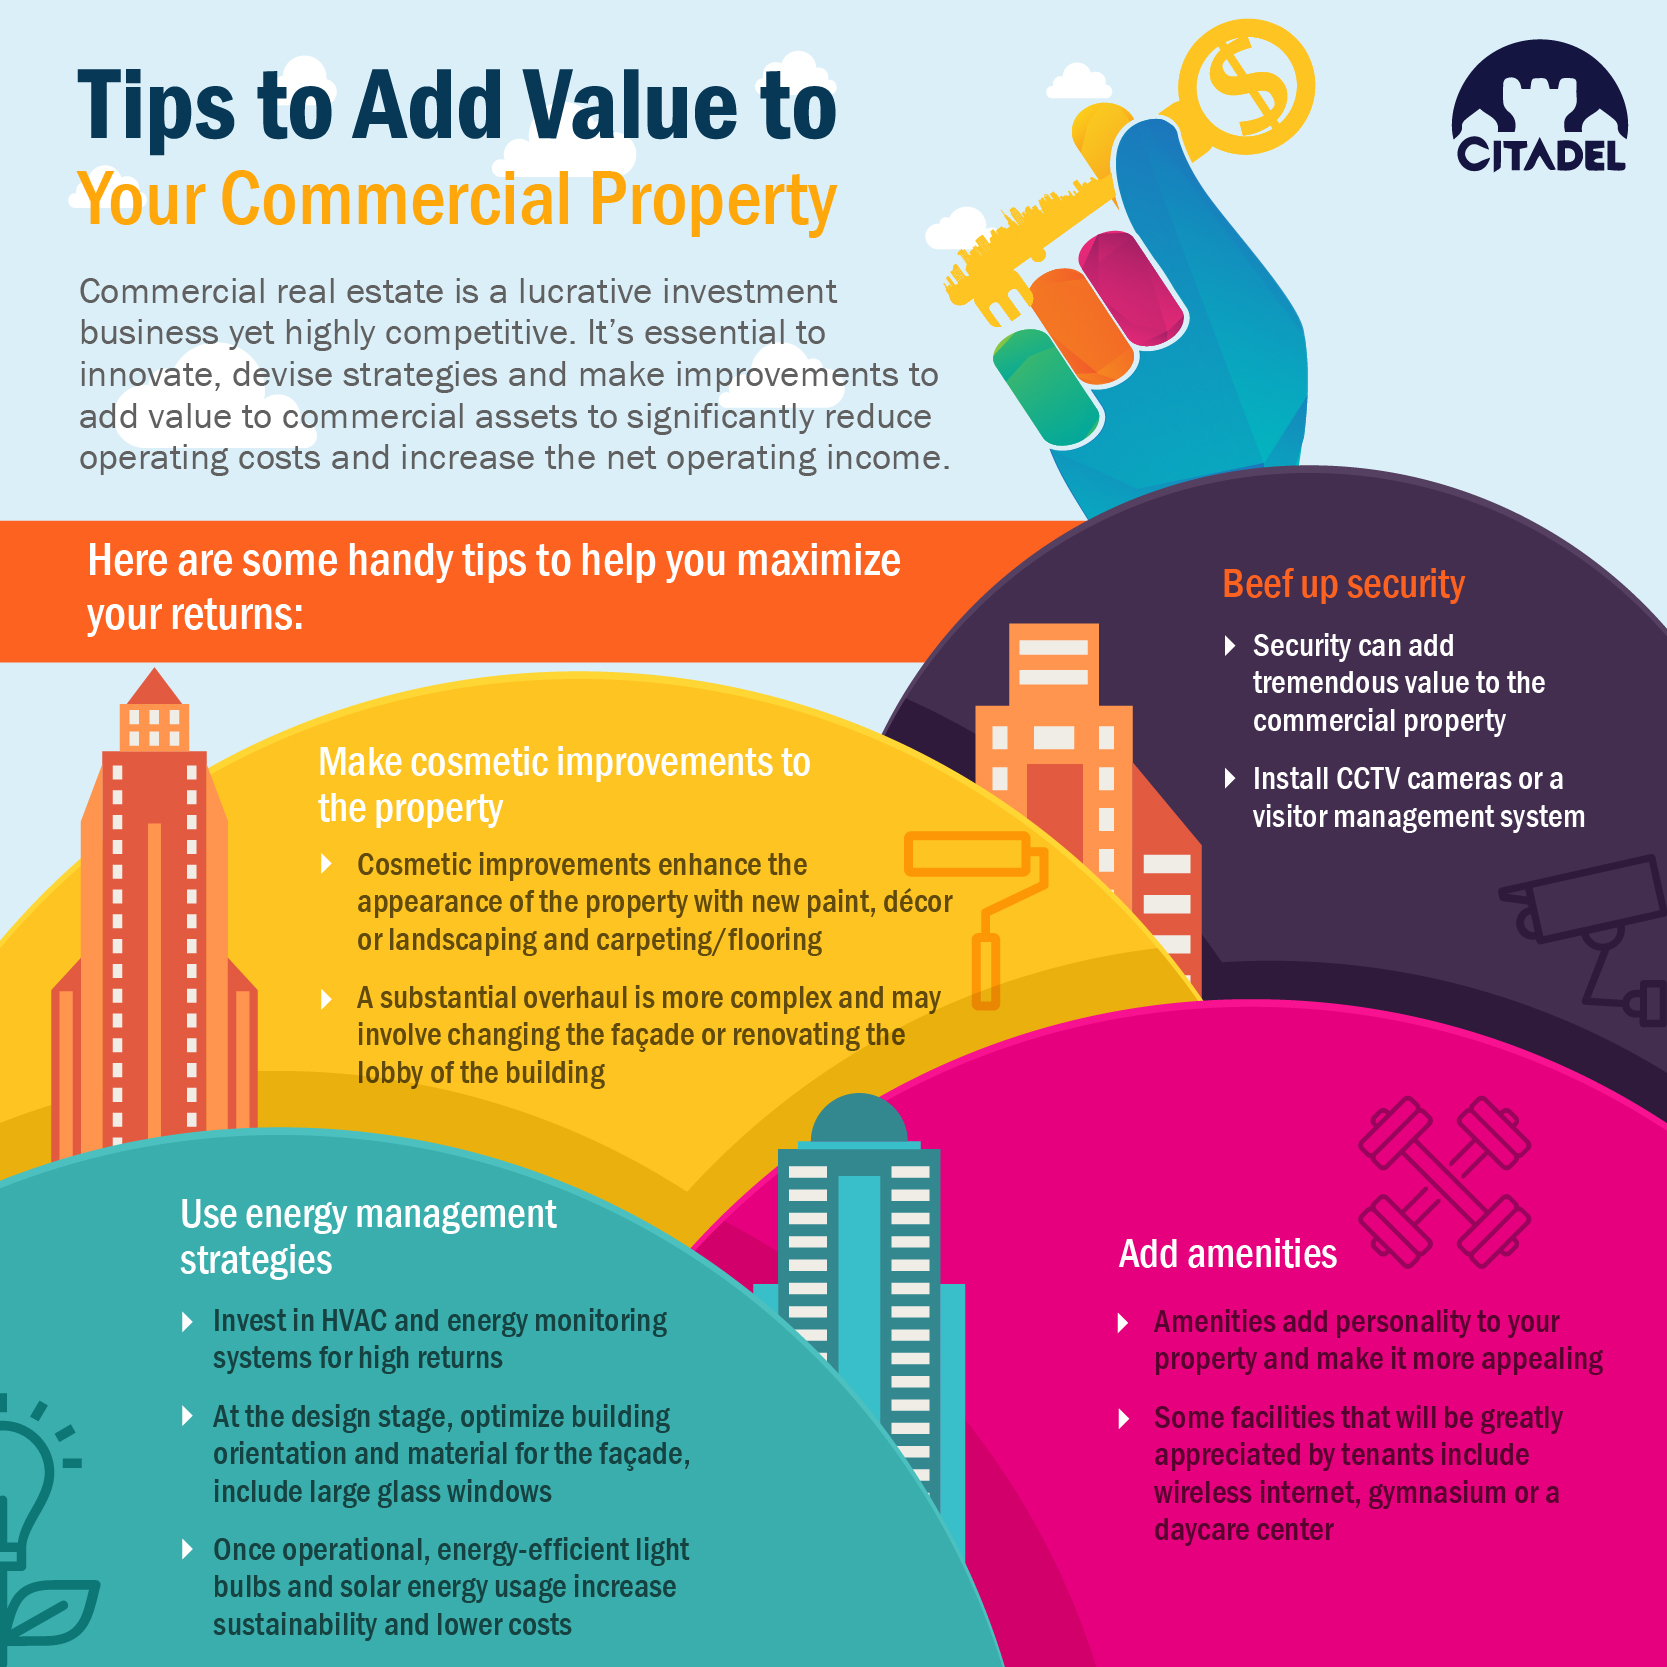 How to add value to Commercial Real Estate assets